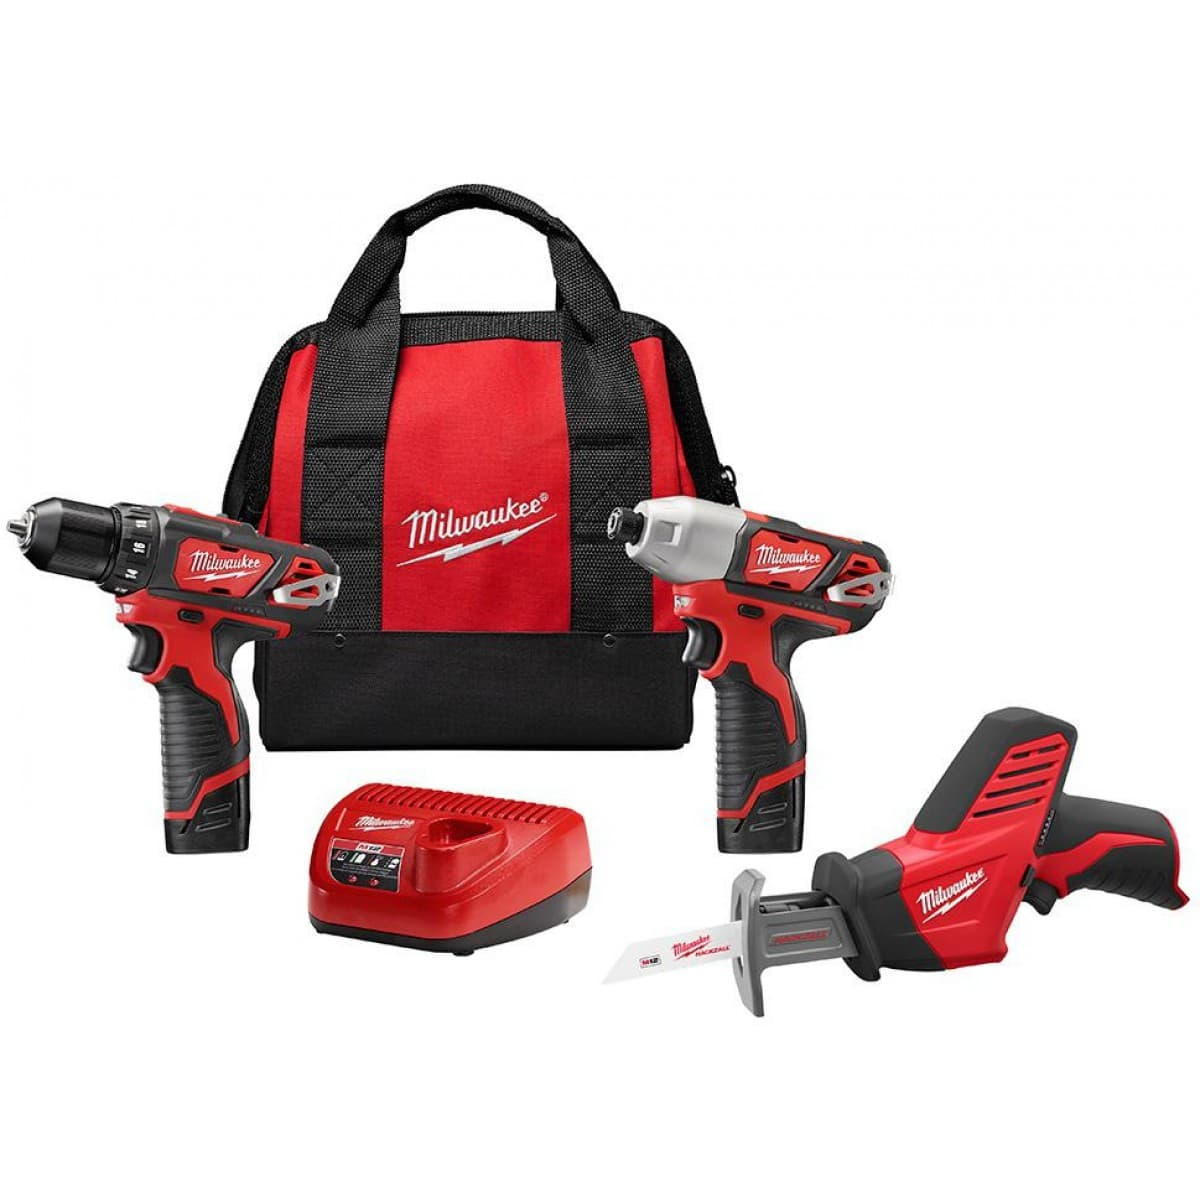 Milwaukee m12 3 tool combo kit plus bonus 4th tool $199